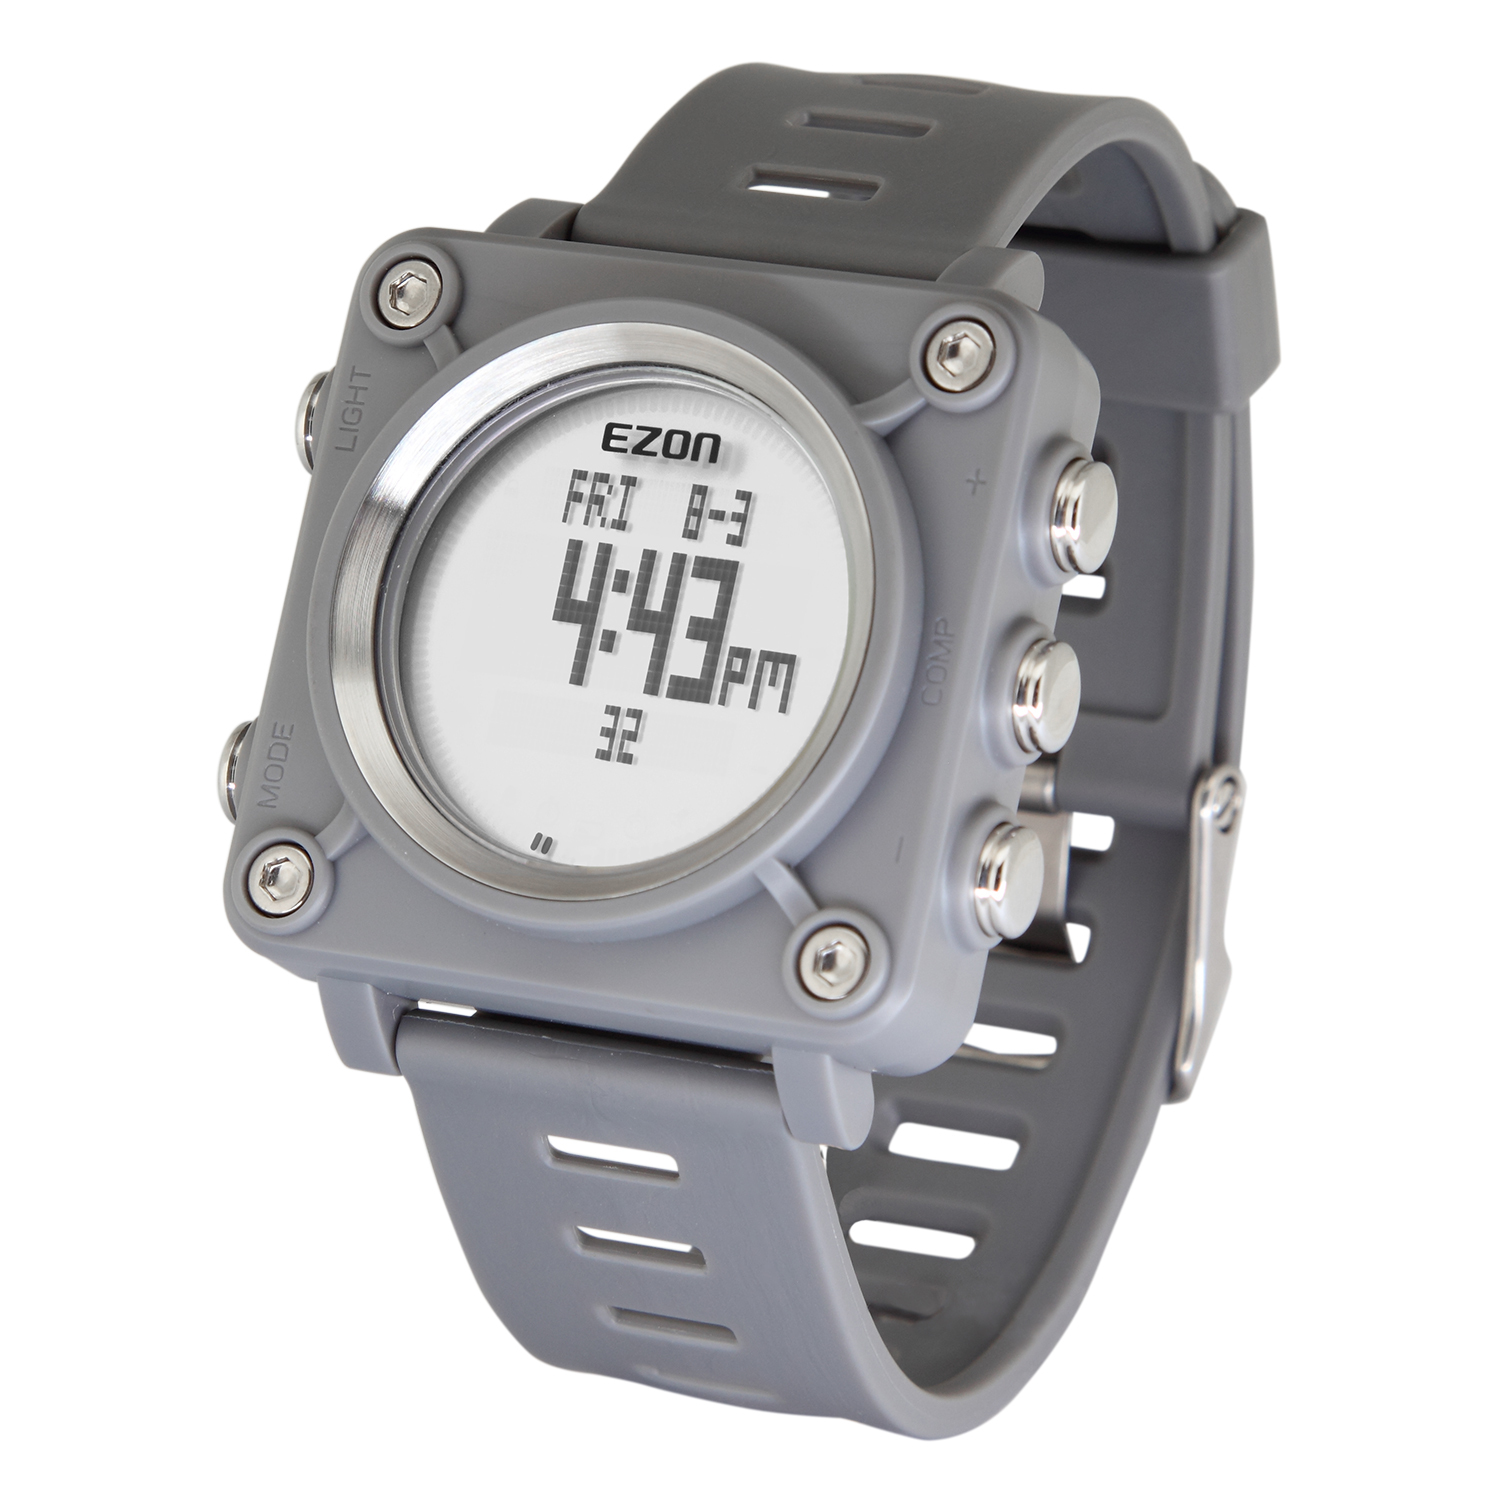 L012A14(Grey) Outdoor Leisure Watch with Alarm, Stopwatch